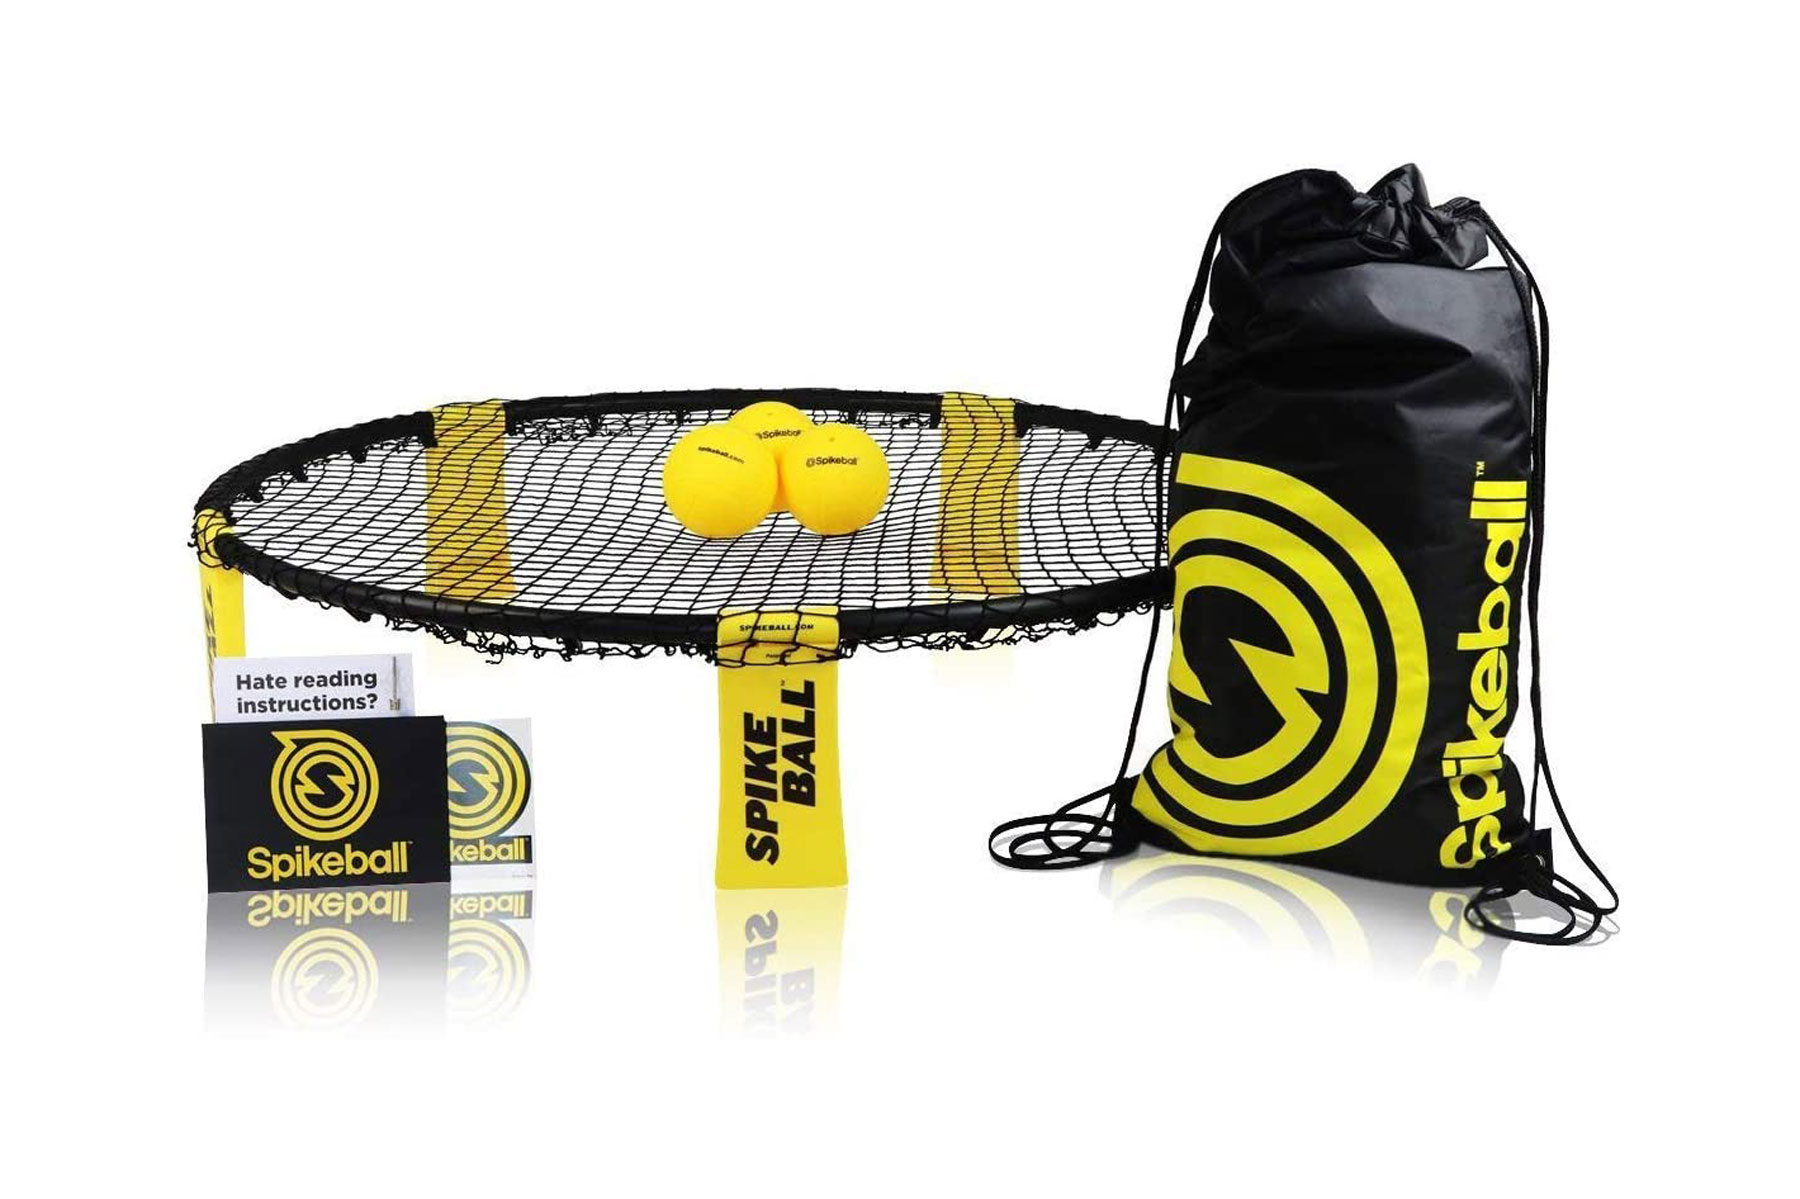 Black and yellow spikeball set